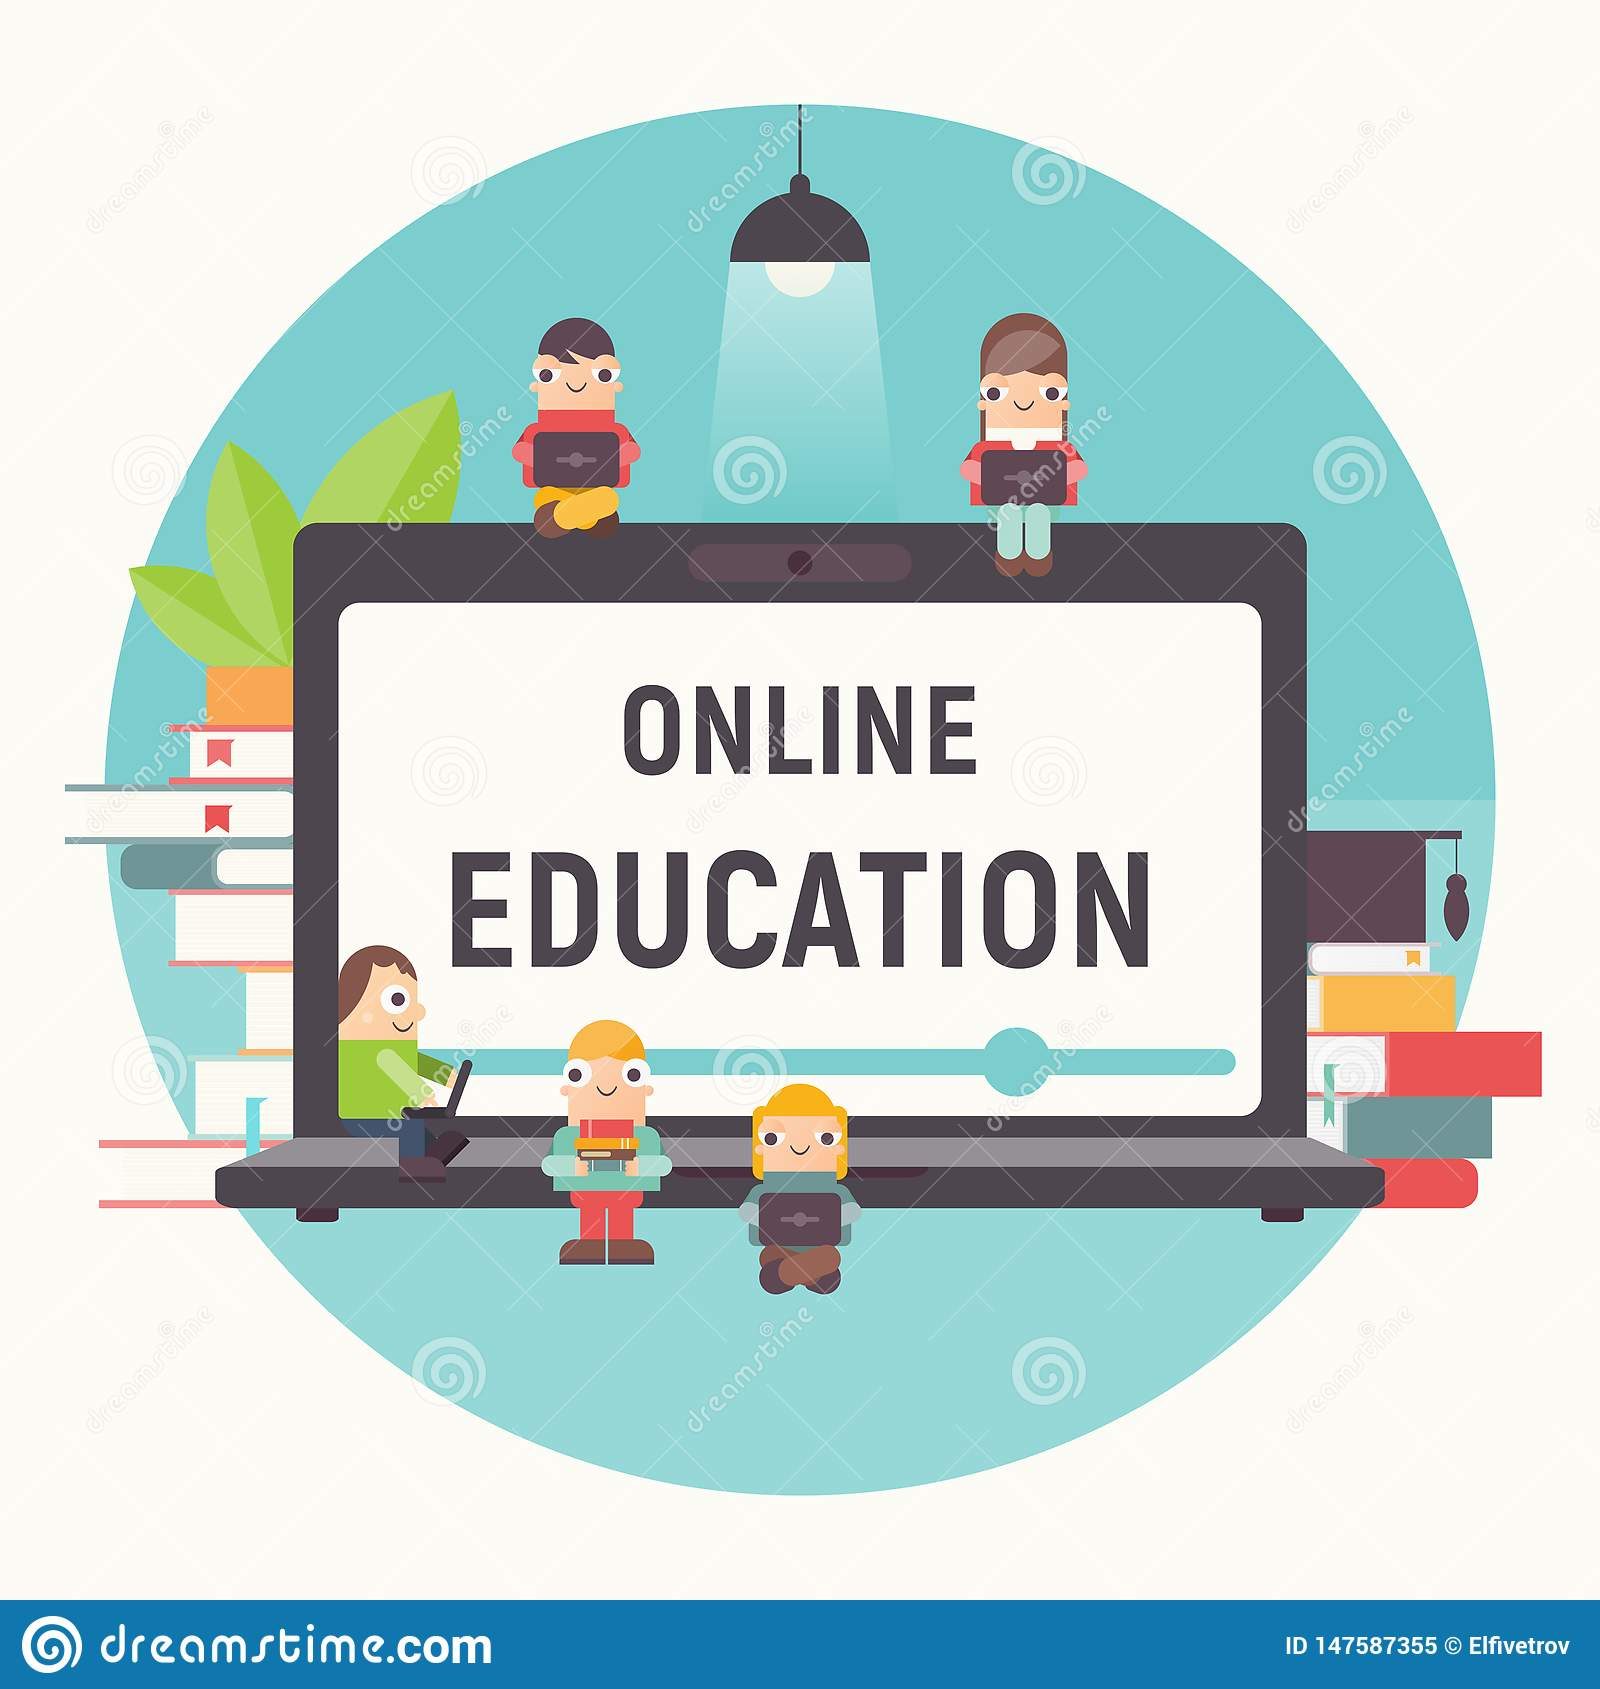 Online Courses Tutorials E Learning Stock Vector Illustration Of College Landing 147587355